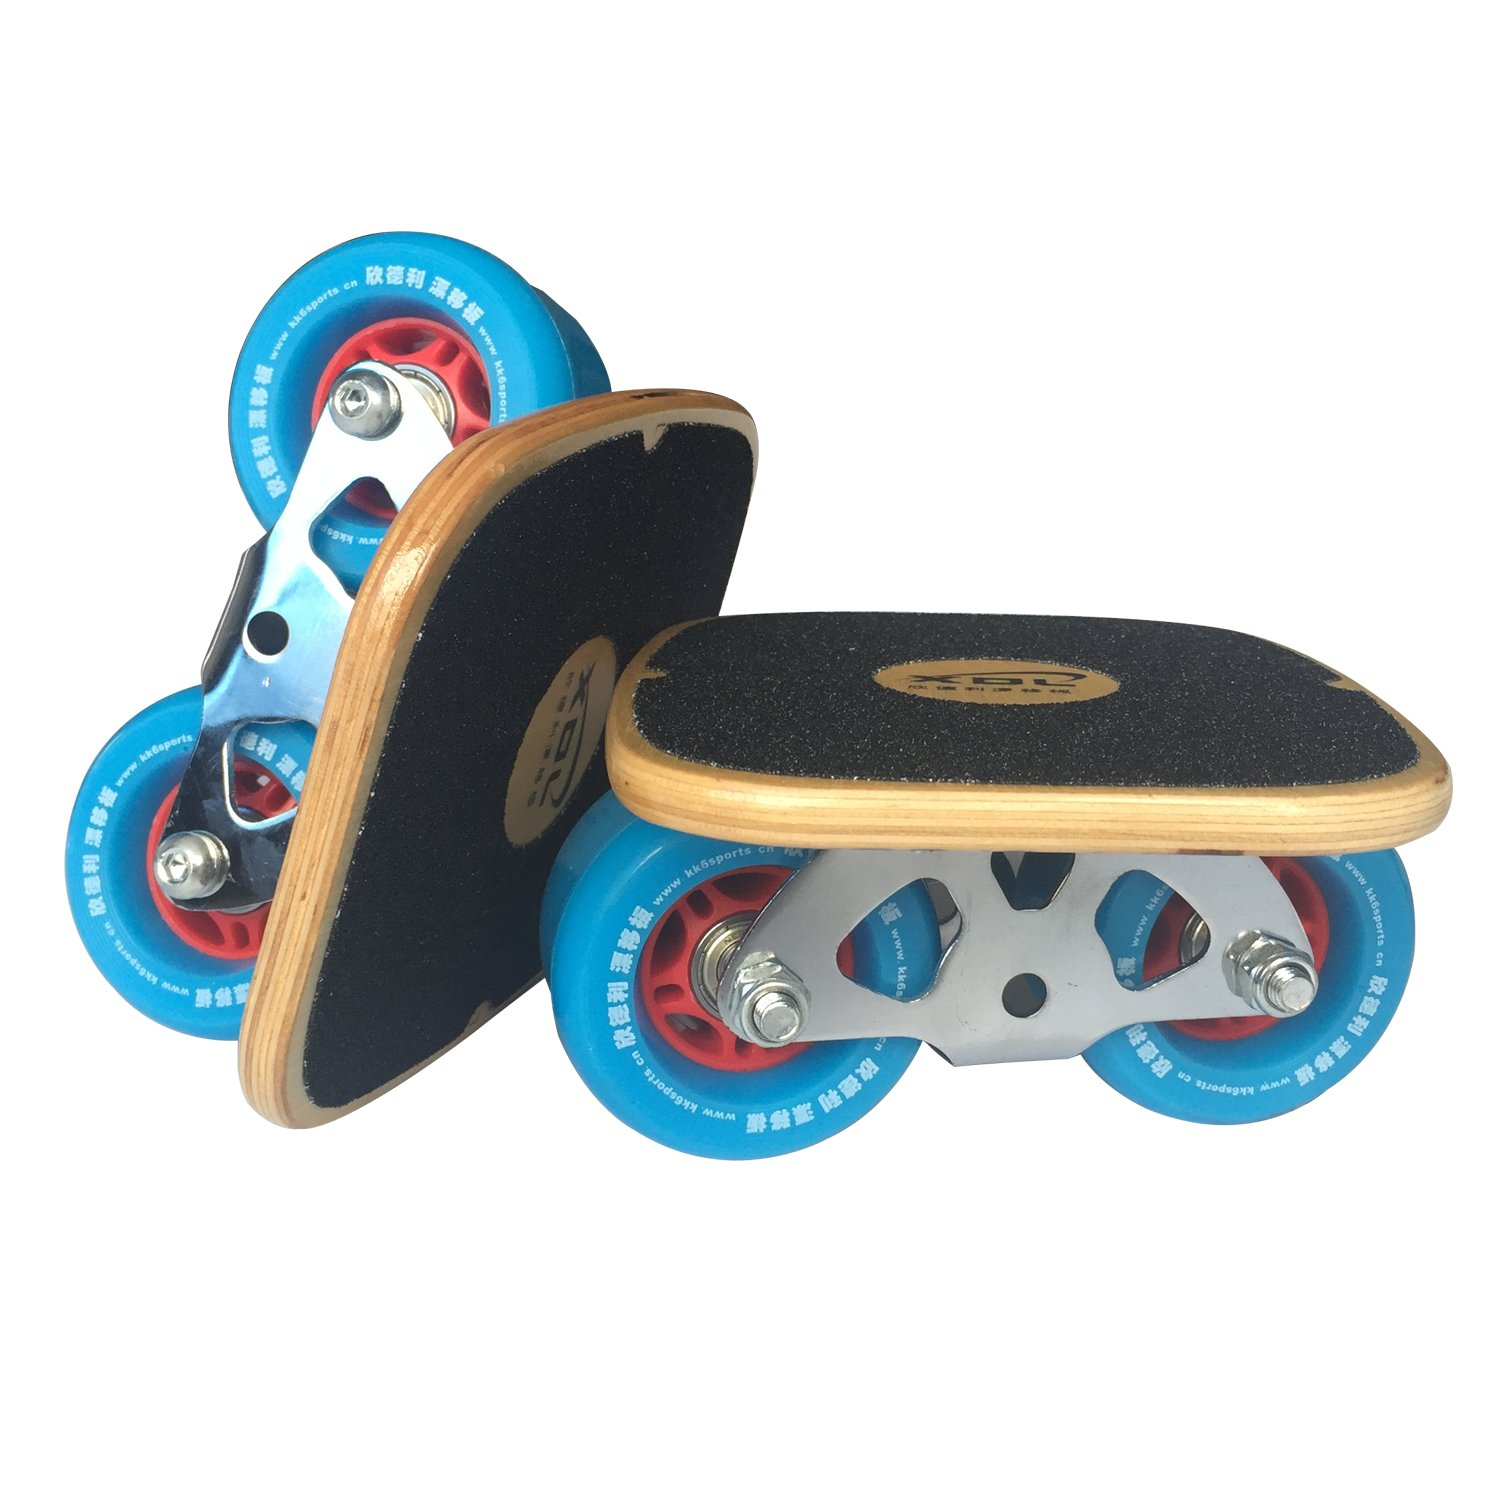 XDL Roller Road Drift Skate Plates with Cool Maple Deck (Blue Wheels)